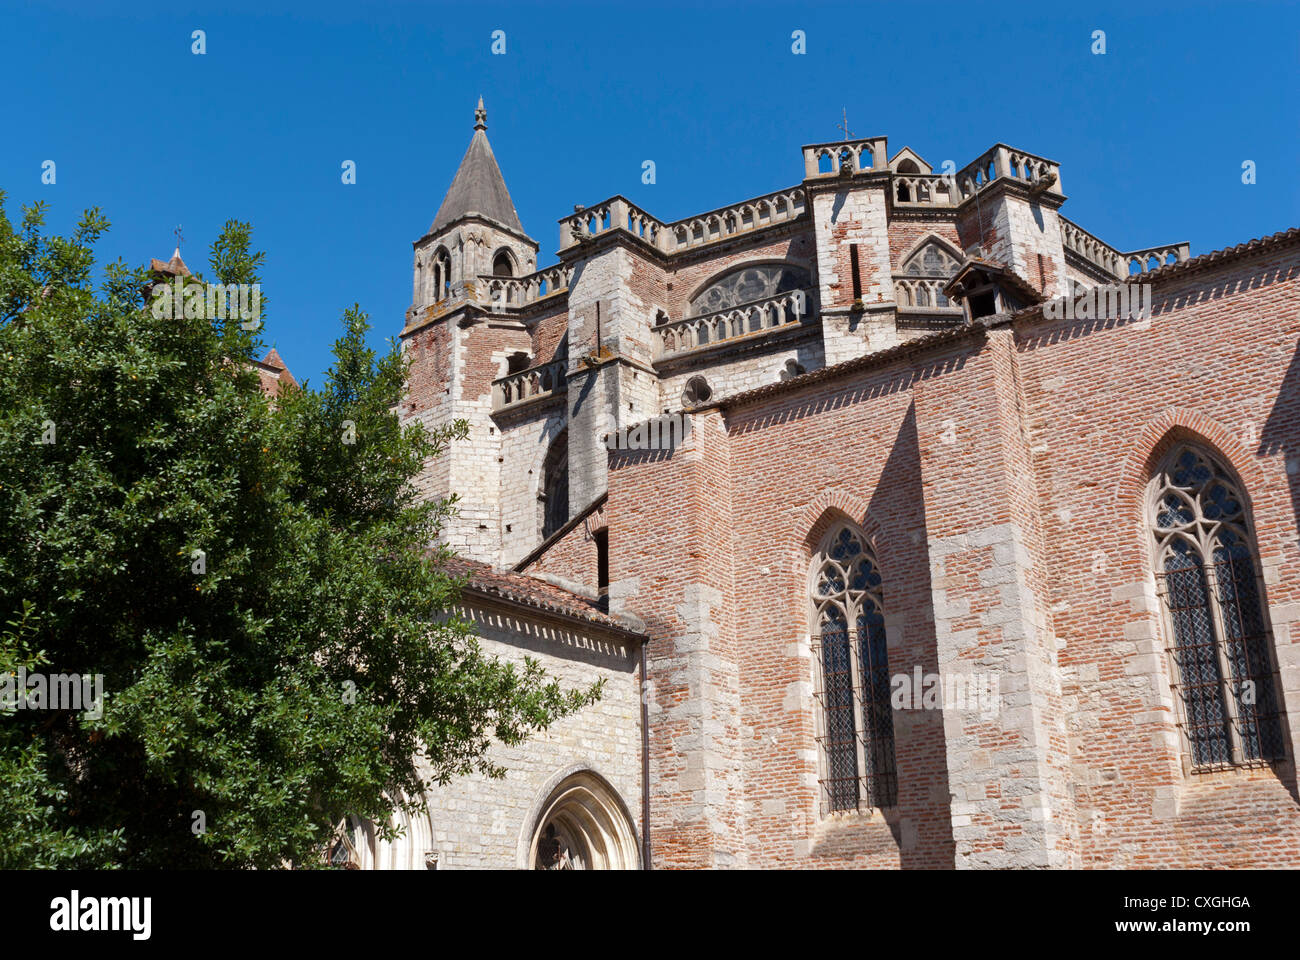 St Etienne Cathedral, Cahors, Lot, France Stock Photo